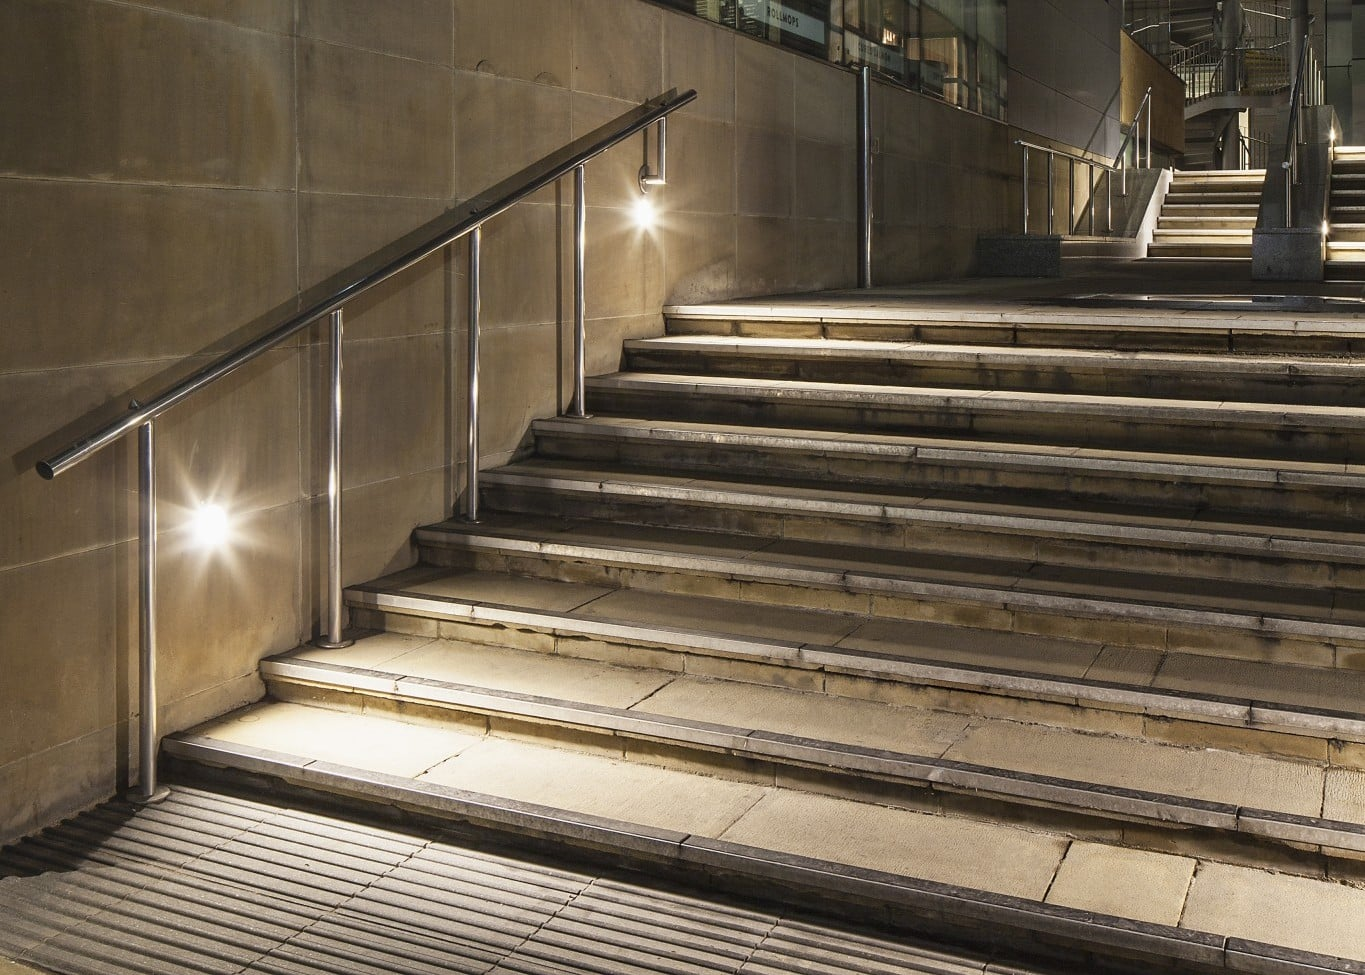 lighting design street stairway